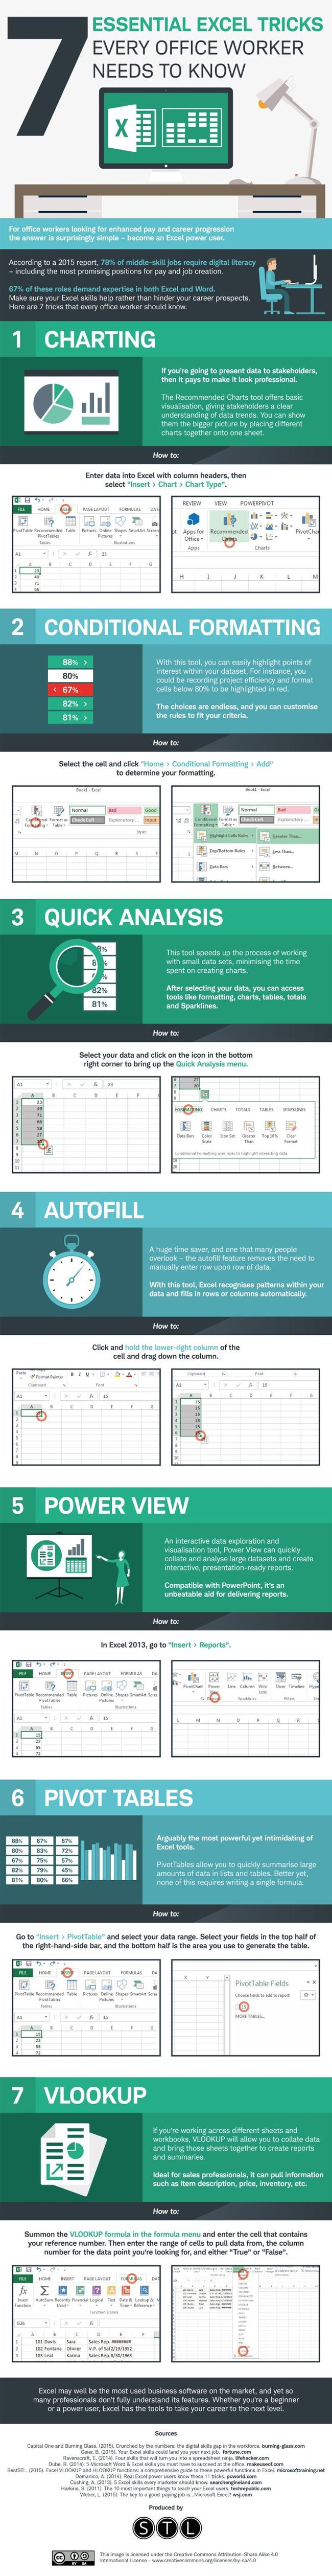 7 Microsoft Excel Tips for Work - The Muse: Here are seven Microsoft Excel tips that'll mak...